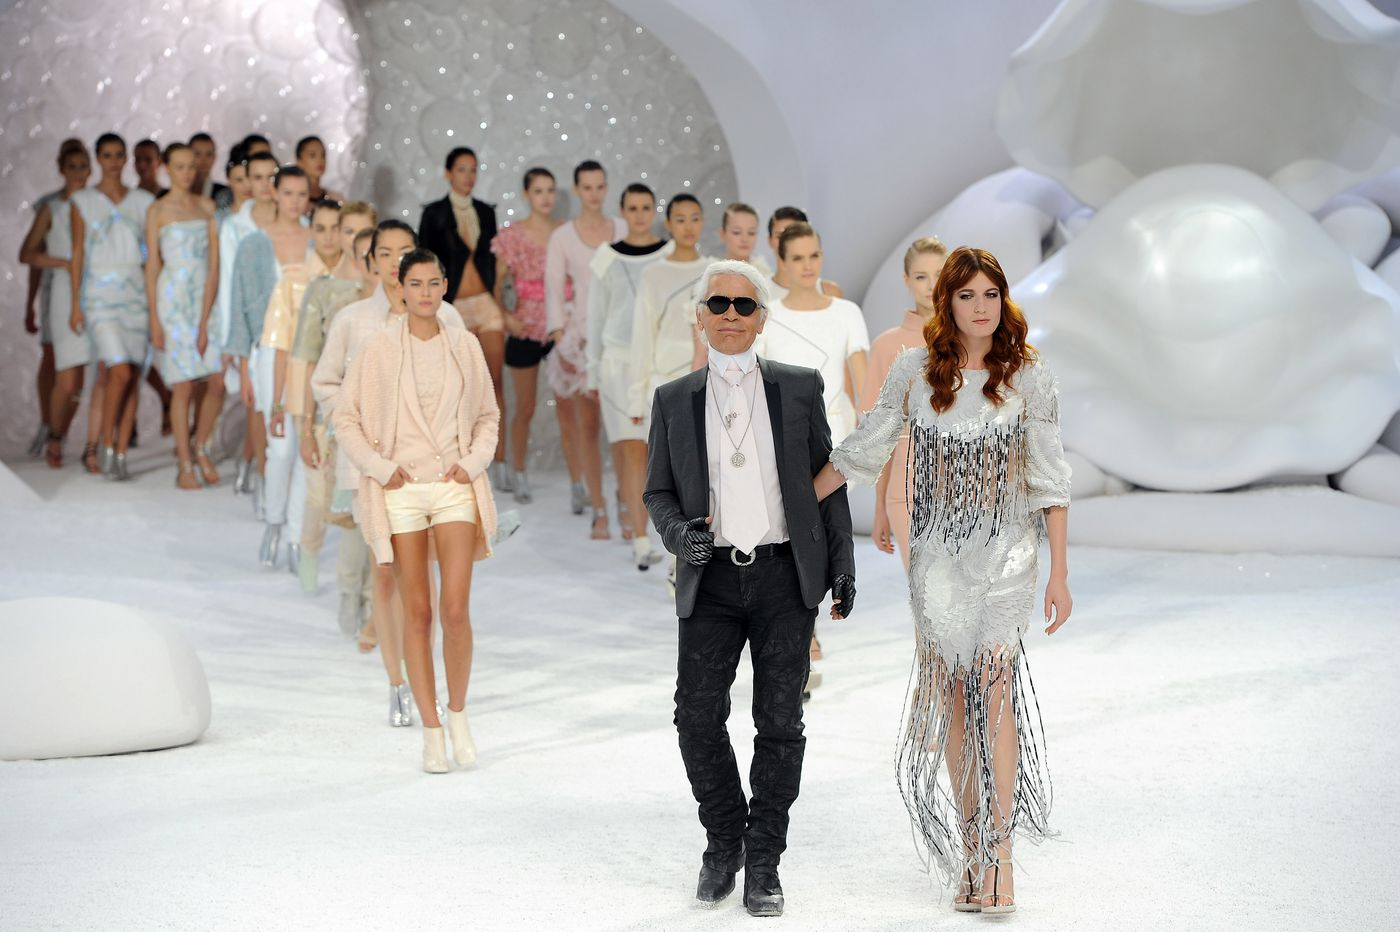 Karl Lagerfeld's most controversial quotes on fat women - Vox